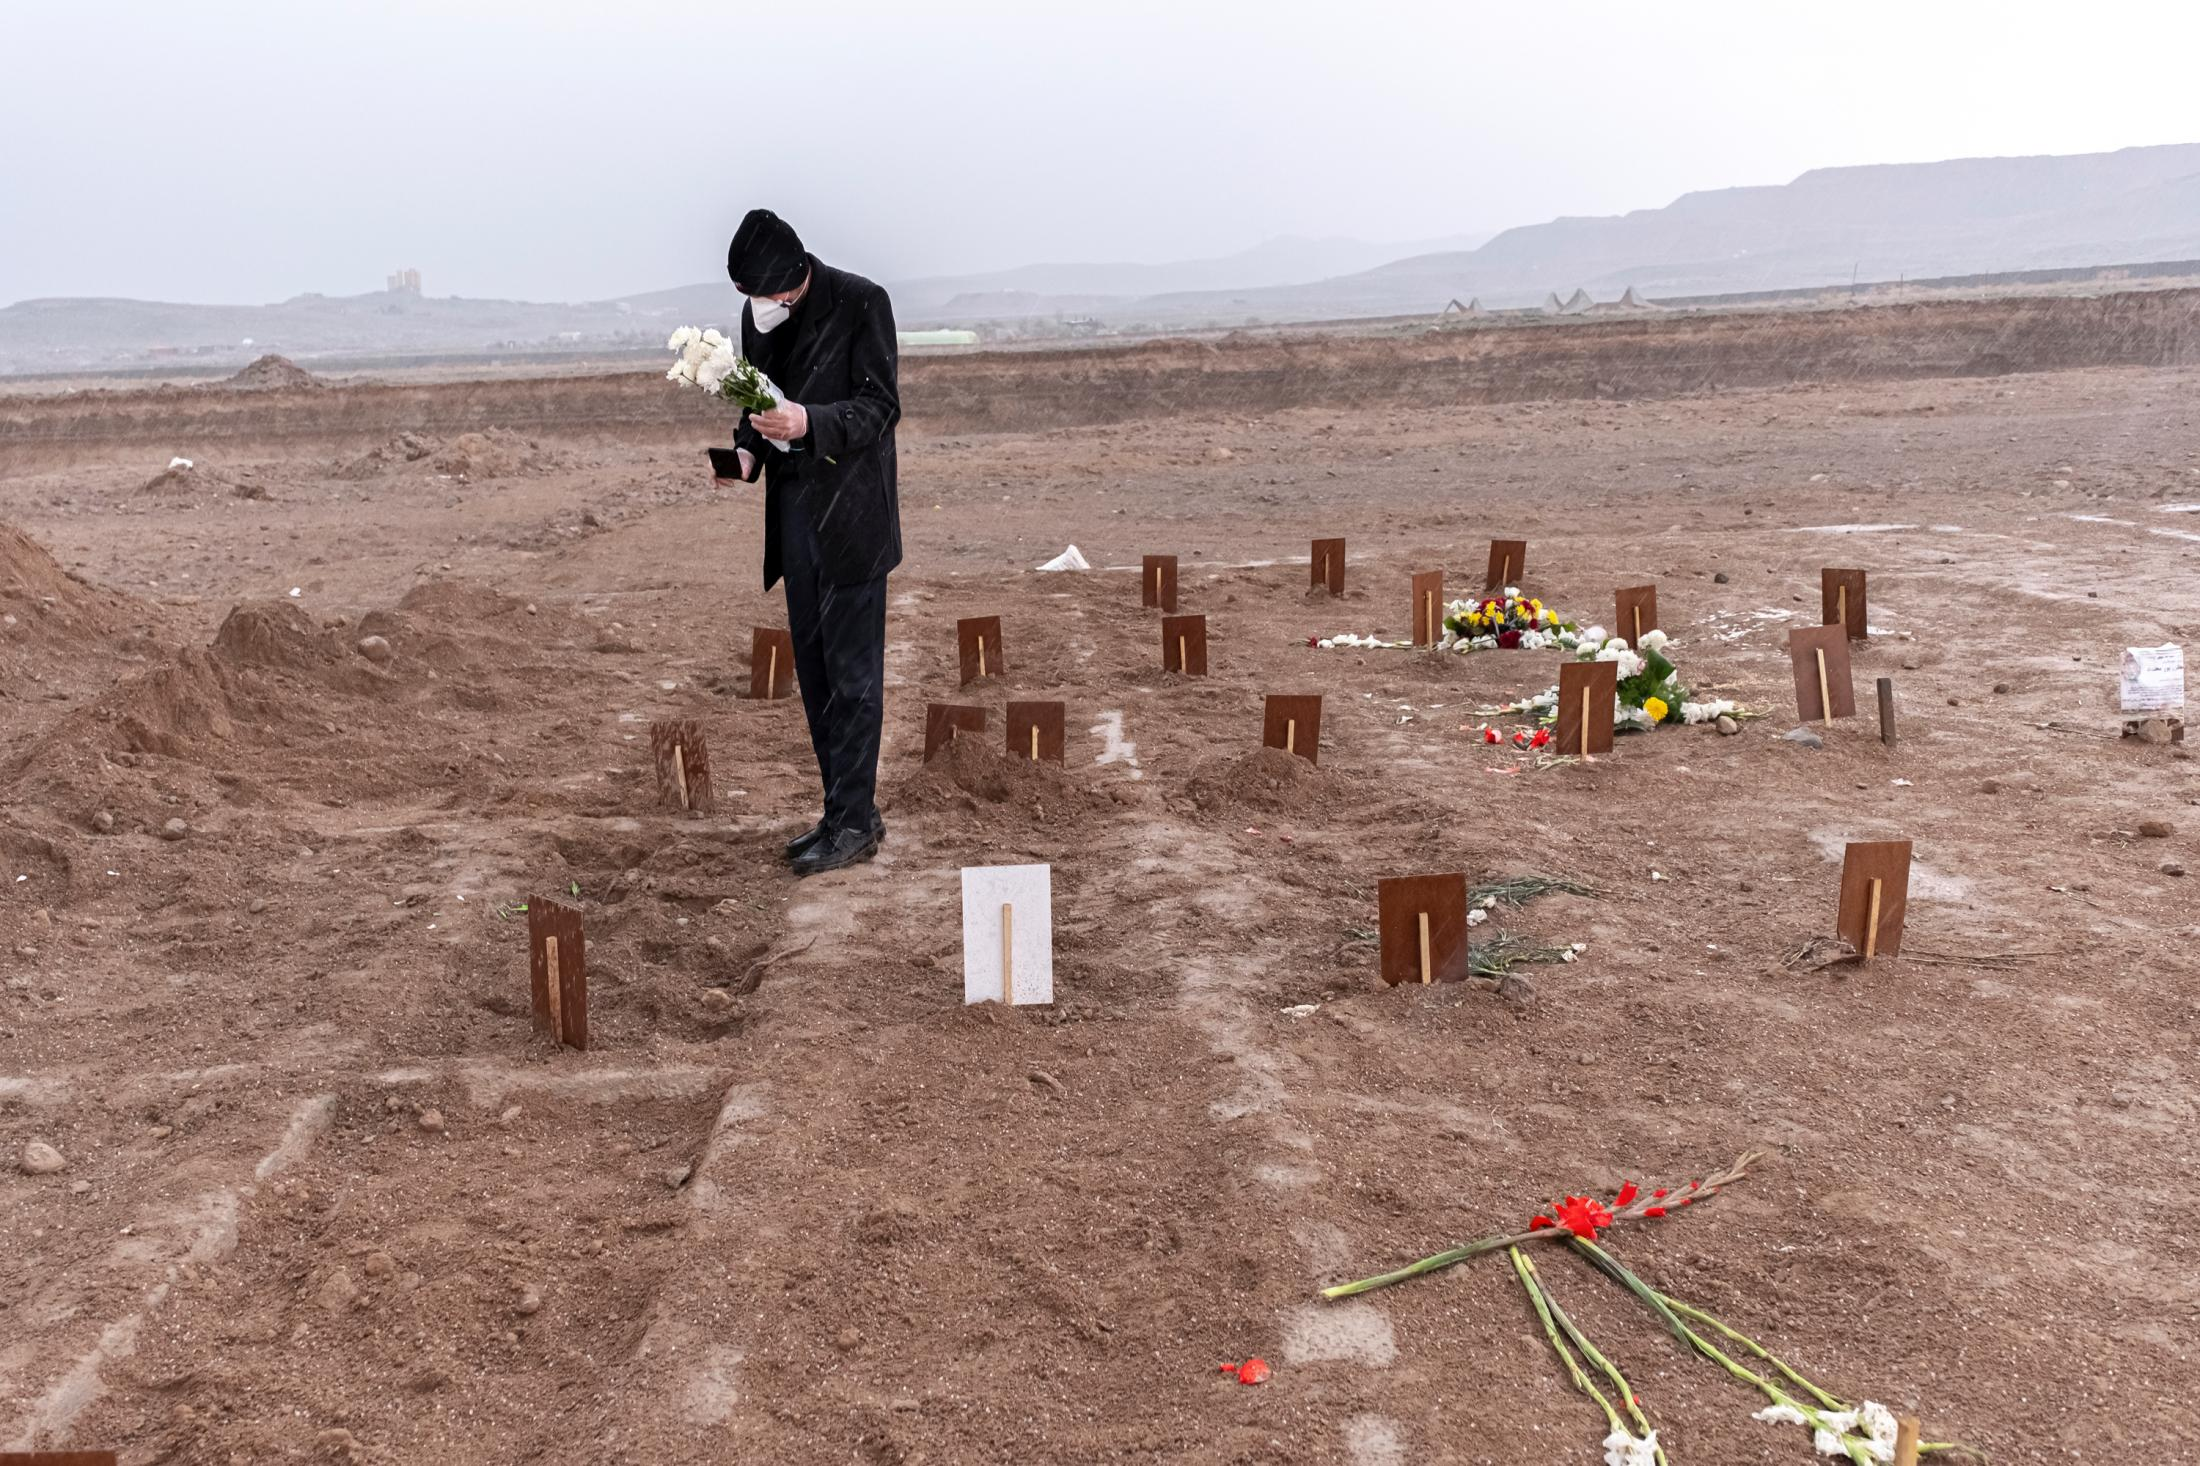 Rasool Zohuri Kahanmooei, the son of the victim of the Corona virus, takes live pictures from his father's grave a few moments after his burial. He, using a cell phone, informs his family members of his father's burial that they could not attend the funeral. The victim's family cries and screams are heard from behind the cell phone. Before the outbreak of the coronavirus, many family members and acquaintances attended the funeral, but given the new circumstances, Rasul is now alone. His father died four days after being discharged from the hospital. Rasool himself, who lived with his father, became infected with the coronavirus and is now in a state of self-quarantined and no one visits him.